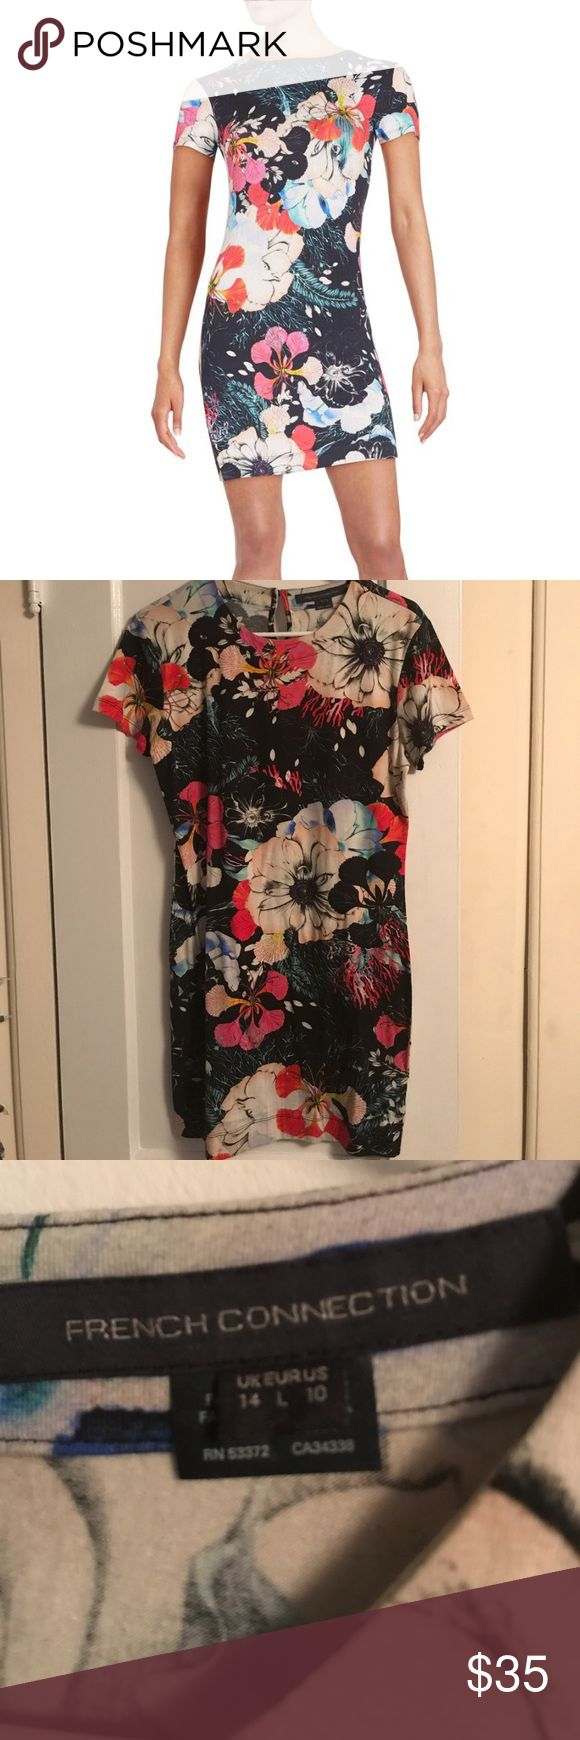 French Connection Dress Floral Print French Connection dress size L.  Has never been worn, great dress for Spring and Summer! French Connection Dresses Mini